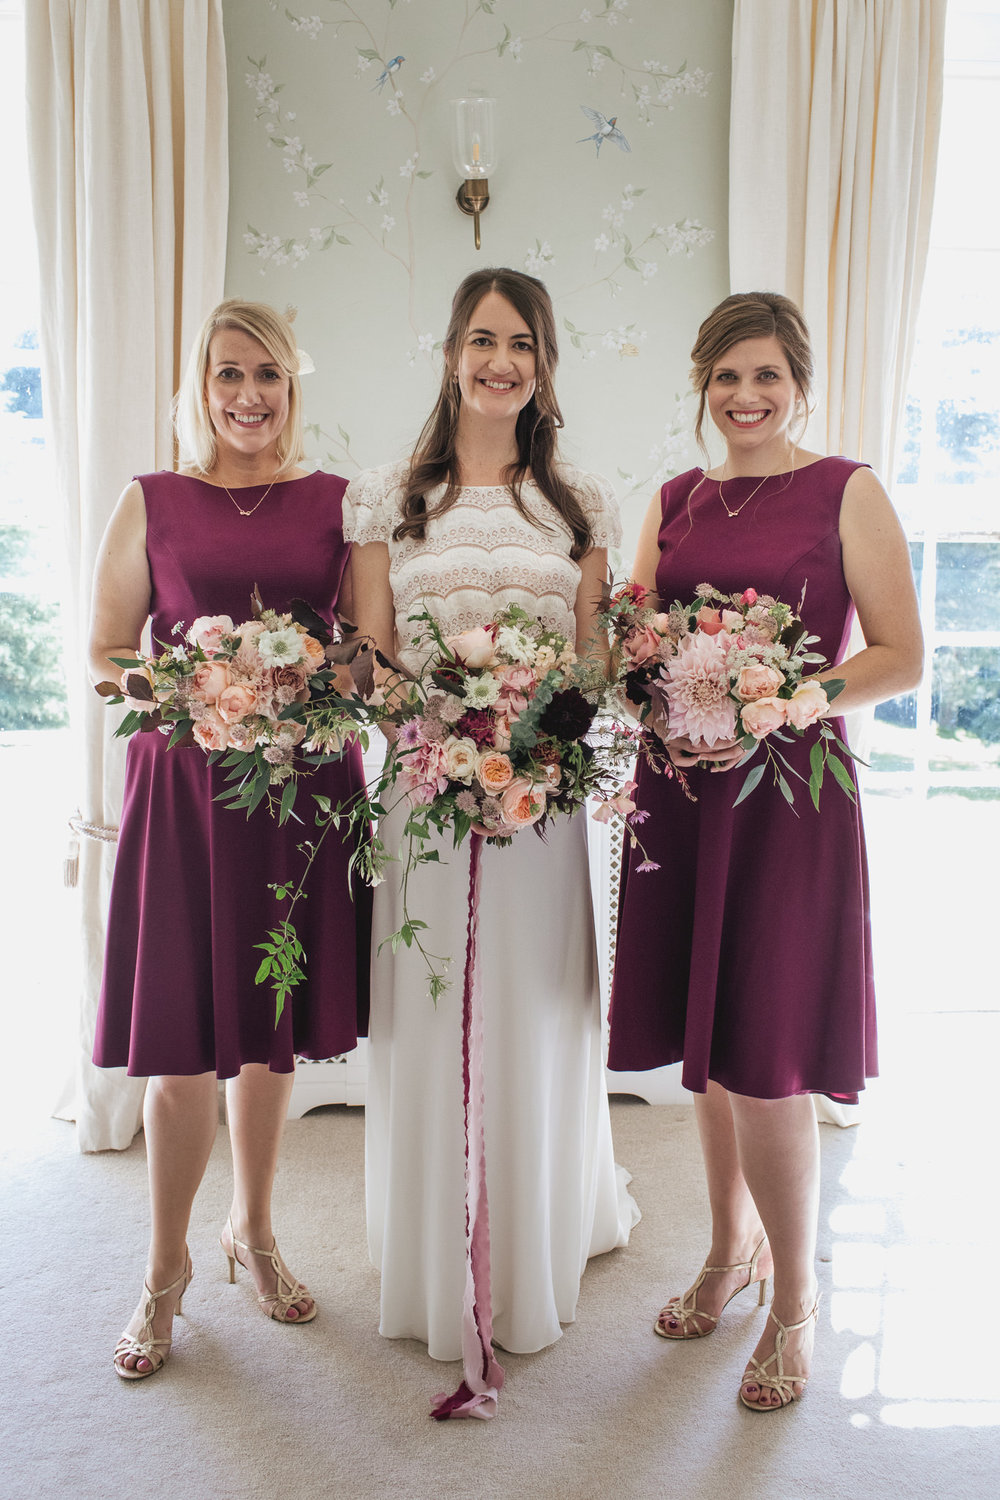 Emma's bouquet lovingly created by her talented florist mum Susan.  Bridesmaids bouquets created by Moss & Stone Floral Design.